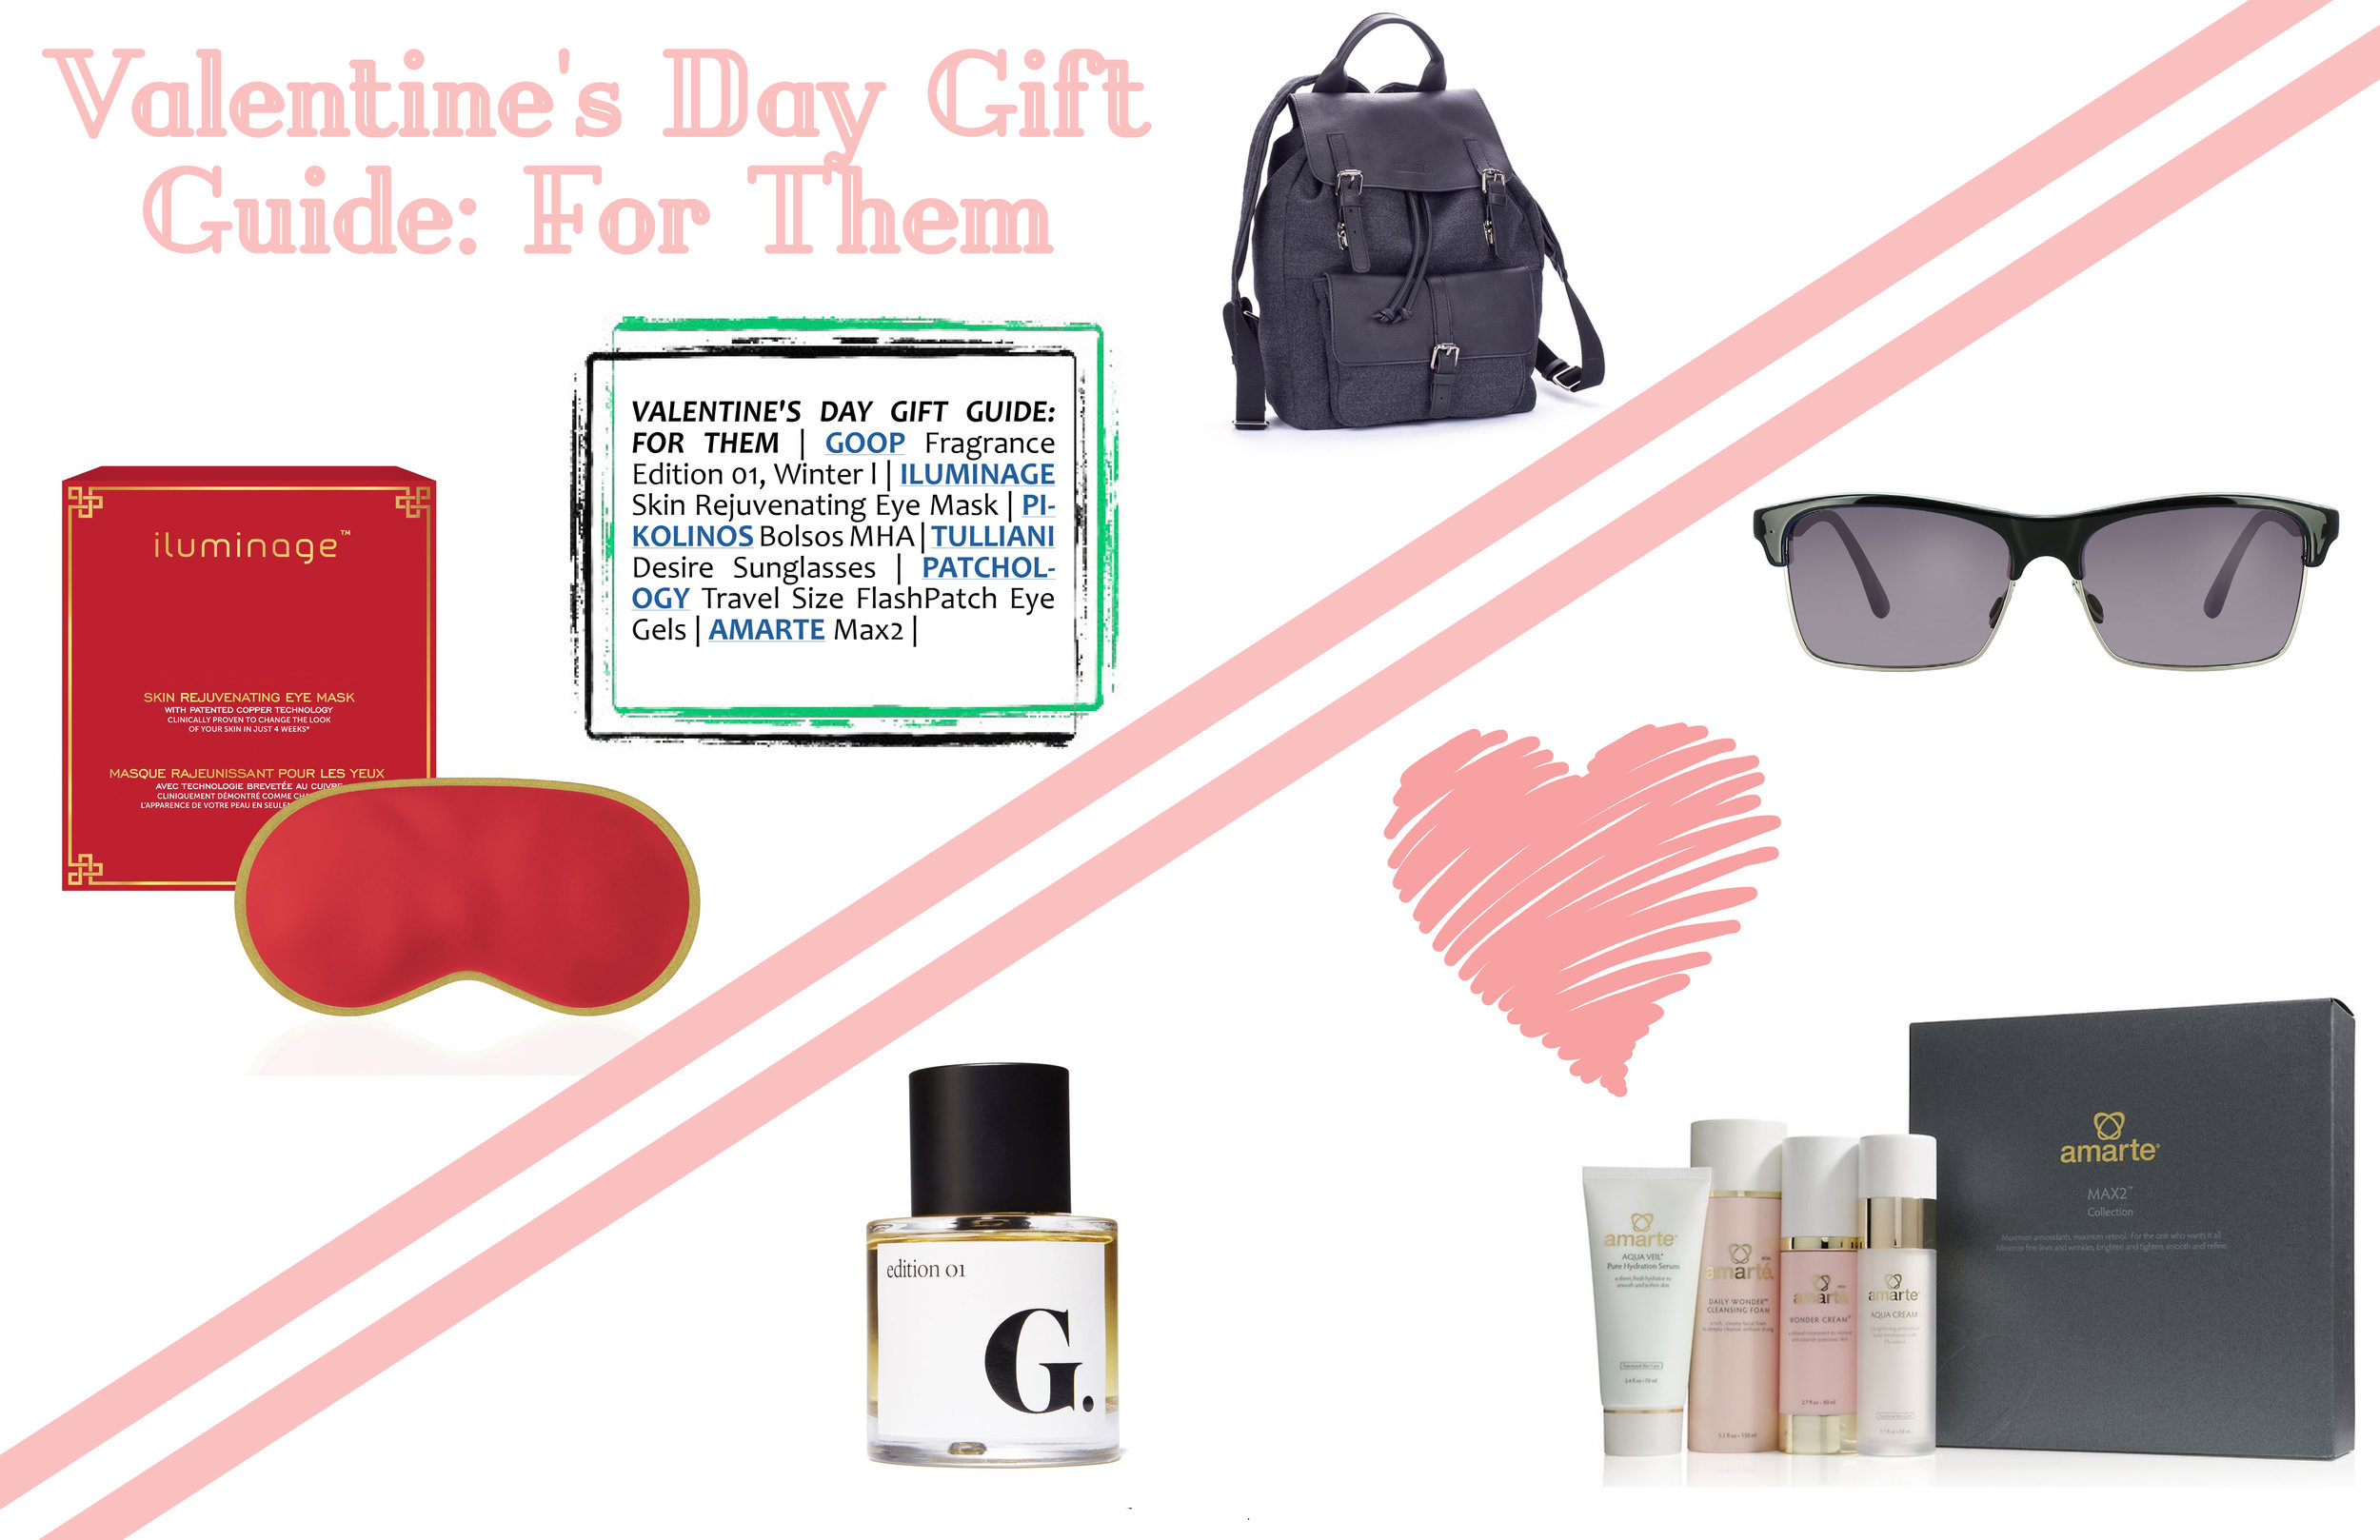 VALENTINE'S DAY GIFT GUIDE: FOR THEM   |   GOOP   Fragrance Edition 01, Winter l |   ILUMINAGE    Skin Rejuvenating Eye Mask |   PIKOLINOS   Bolsos MHA |   TULLIANI   Desire Sunglasses |   AMARTE   Max2 |